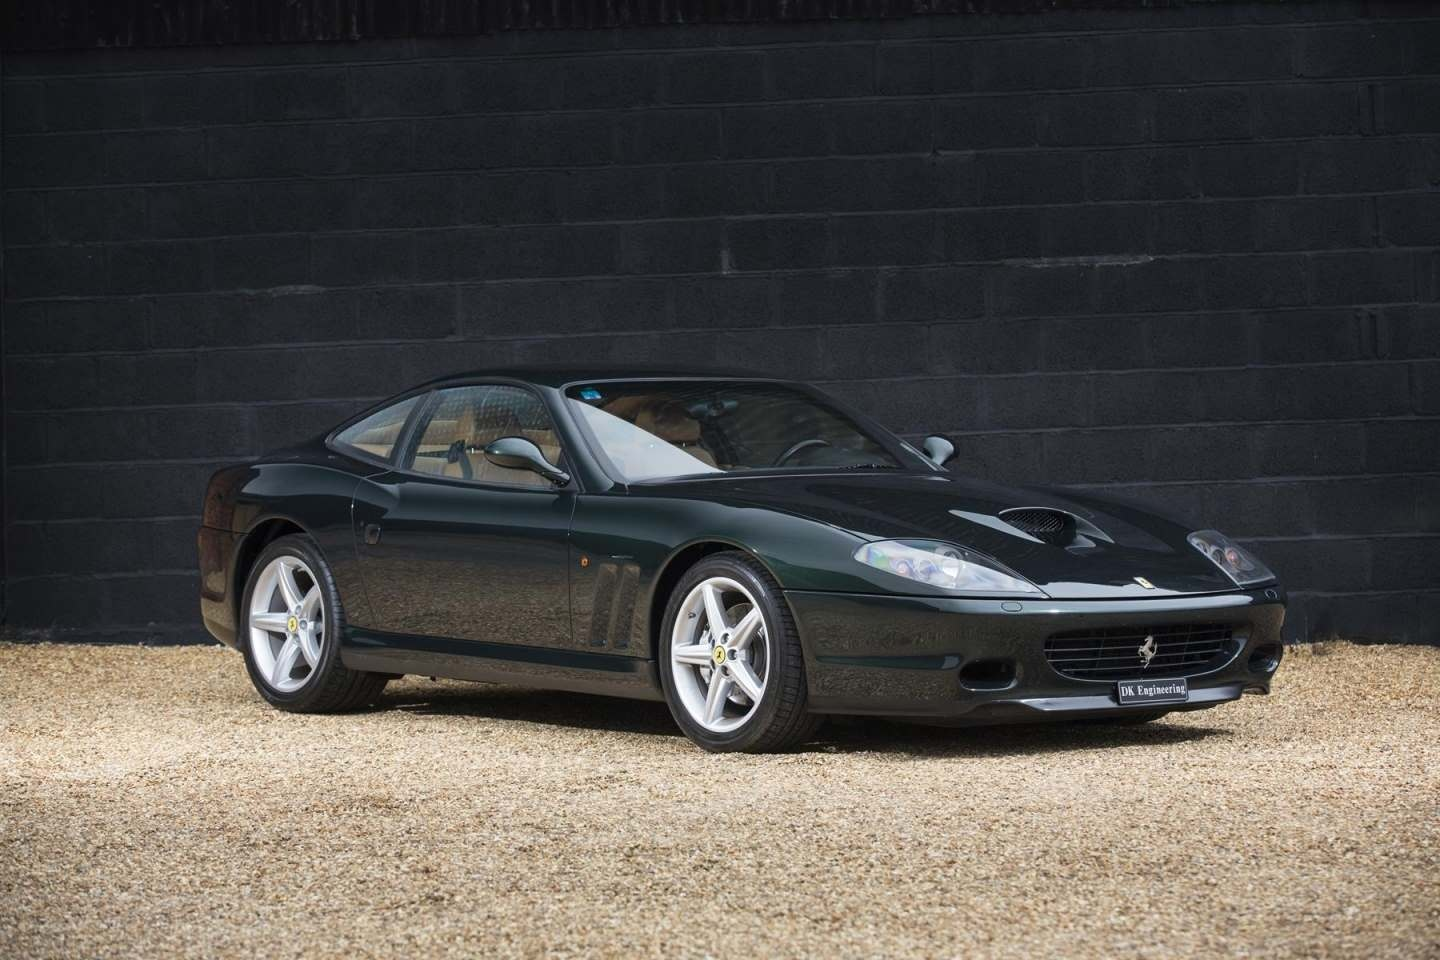 gt modificata coup equipped is ferrari autoevolution treat for news manual a touring grand sale